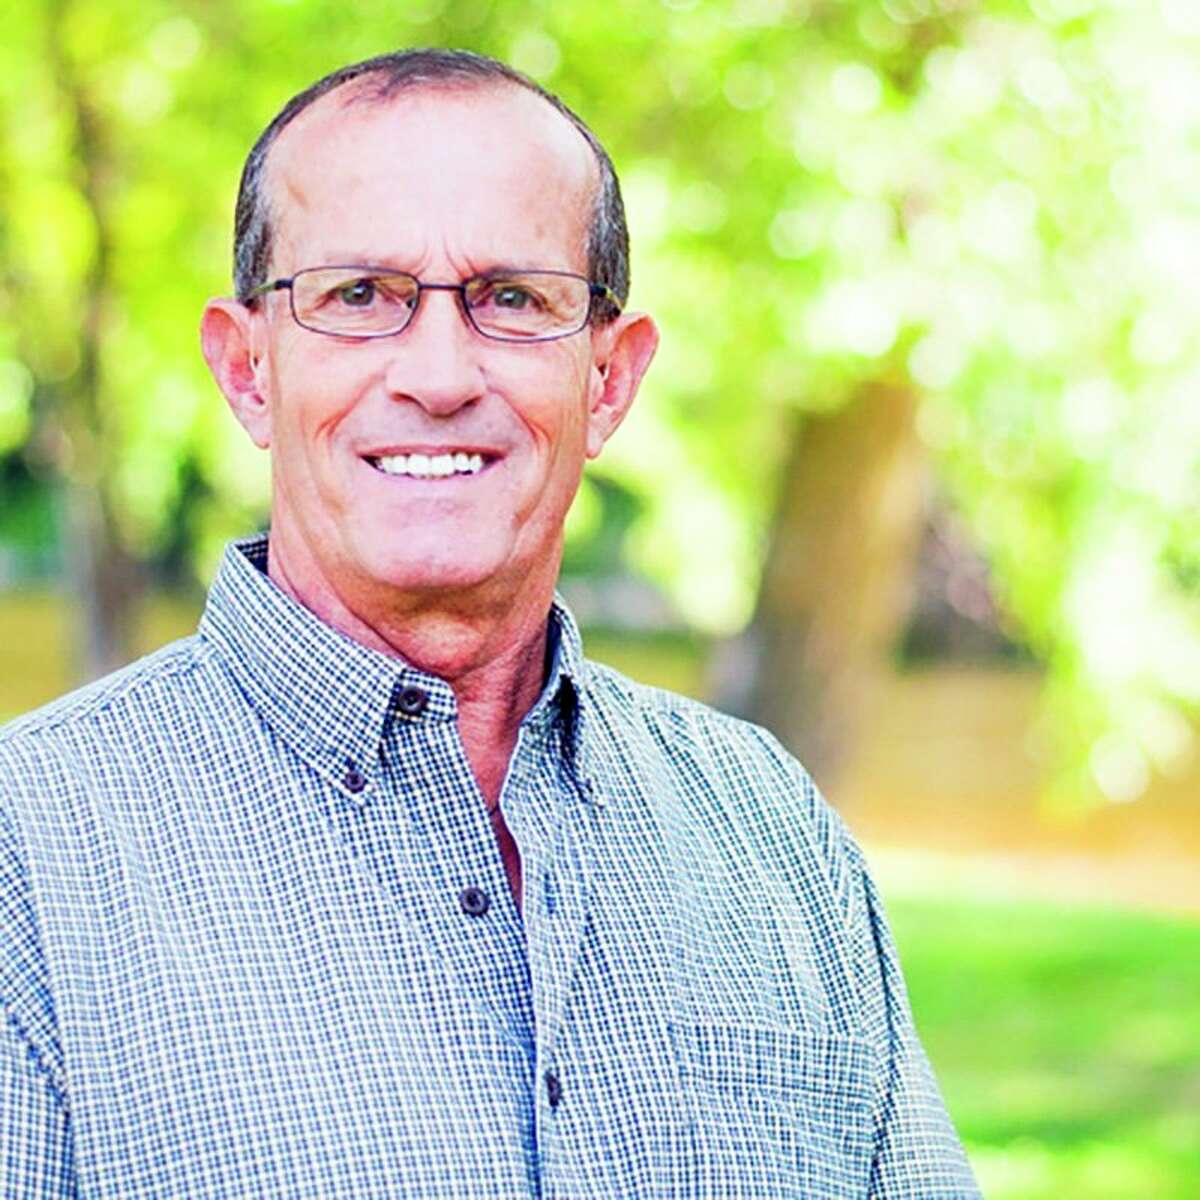 Pastor Ron Witbeck